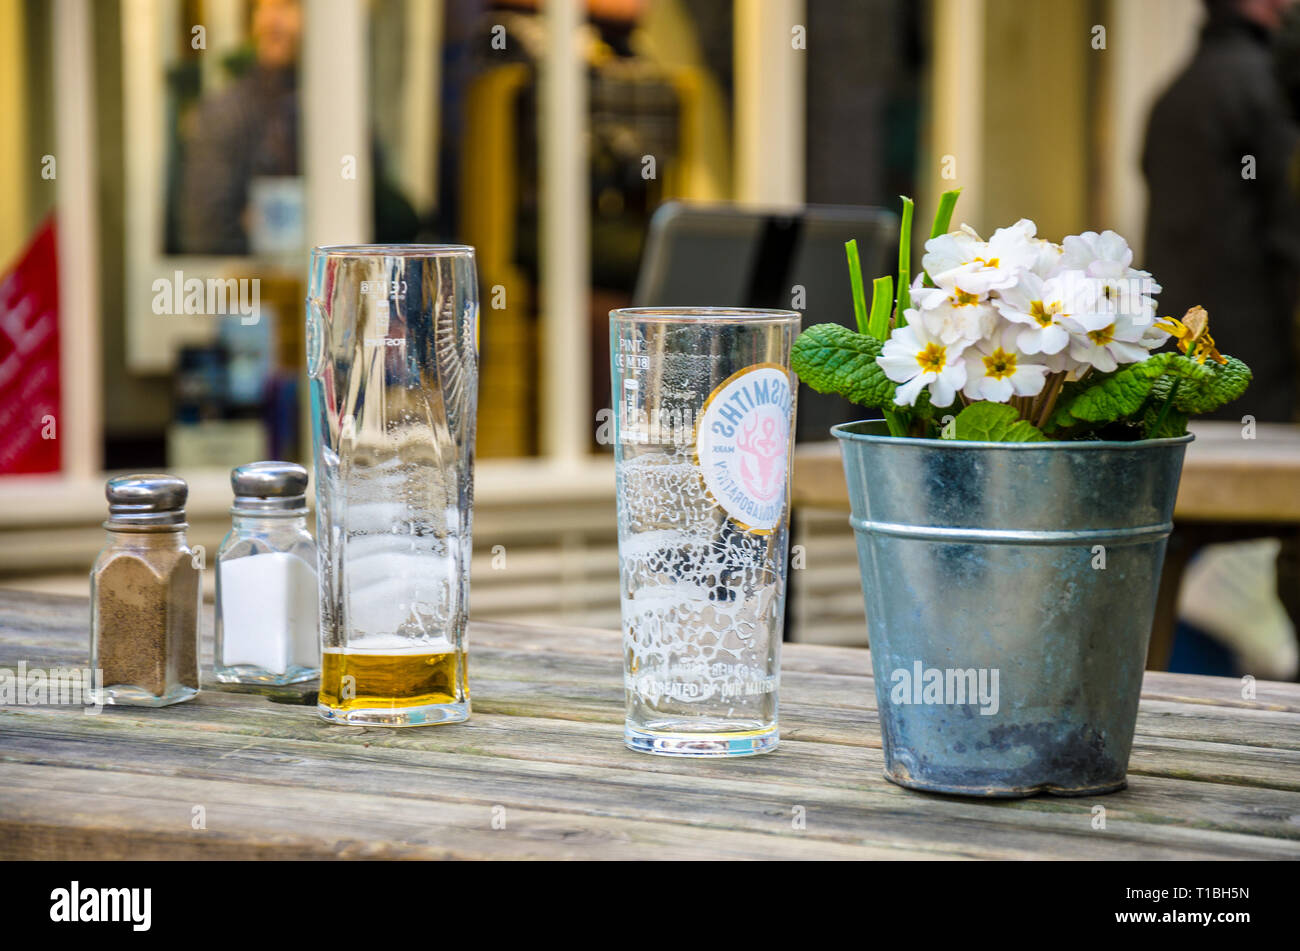 Empty pint glasses, salt, pepper and a polyanthus plant in a pot. - Stock Image